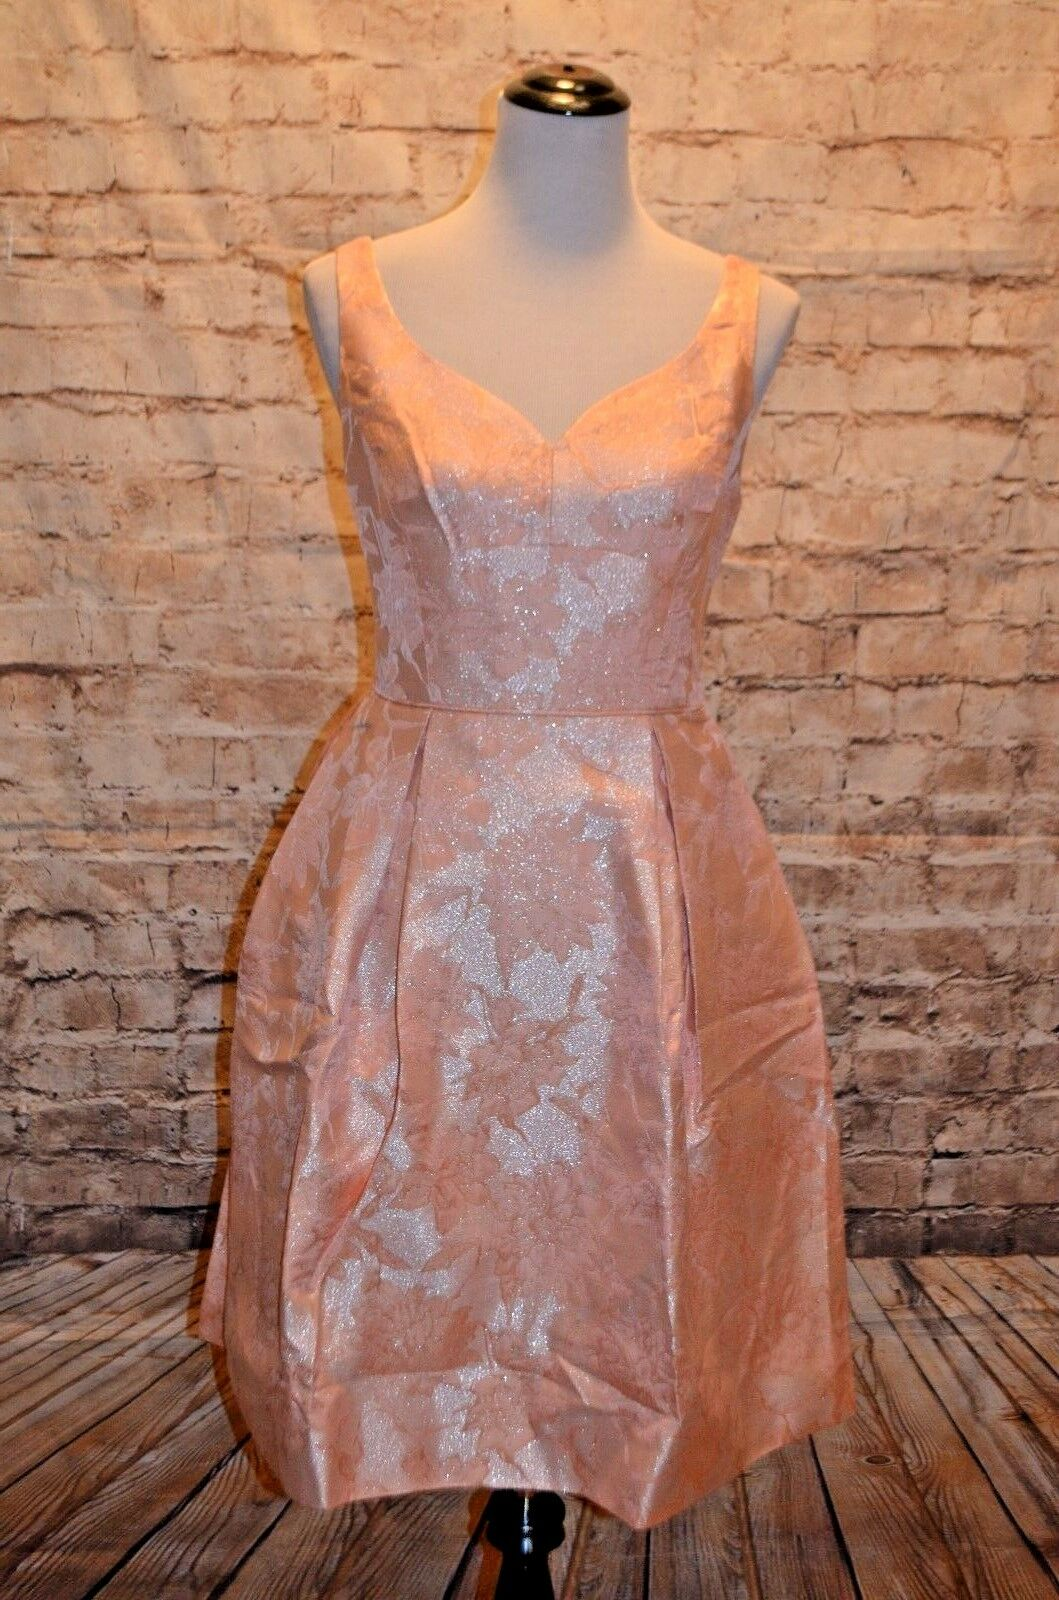 Modcloth Stylish Serendipity Dress NWT 8 peach fit & flare jacquard Maggy London